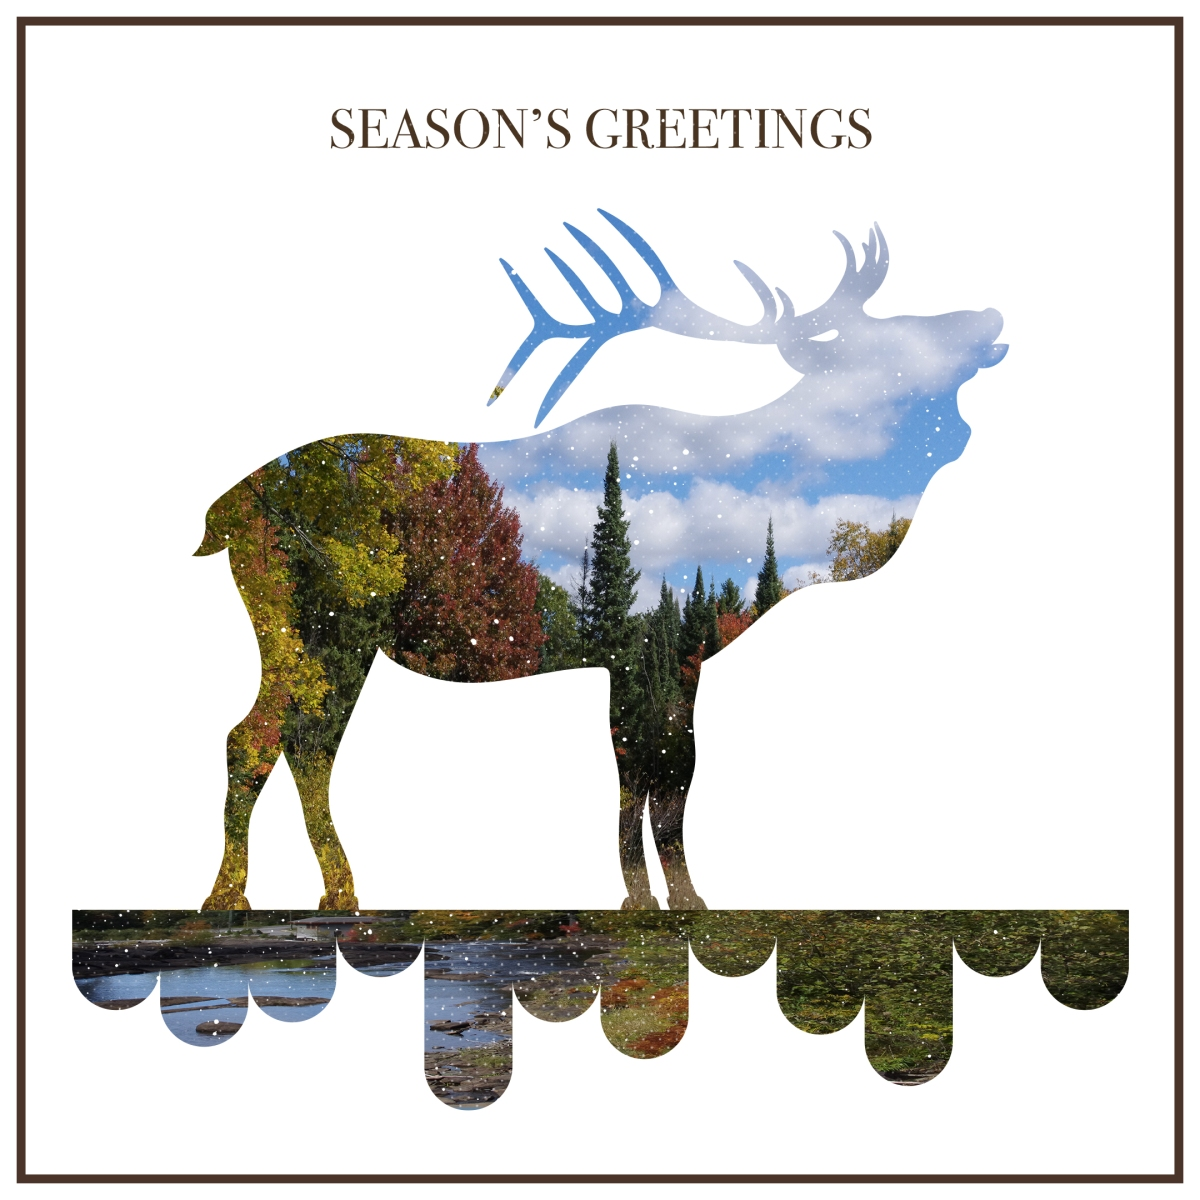 Season's greetings - Design by Miss Coco